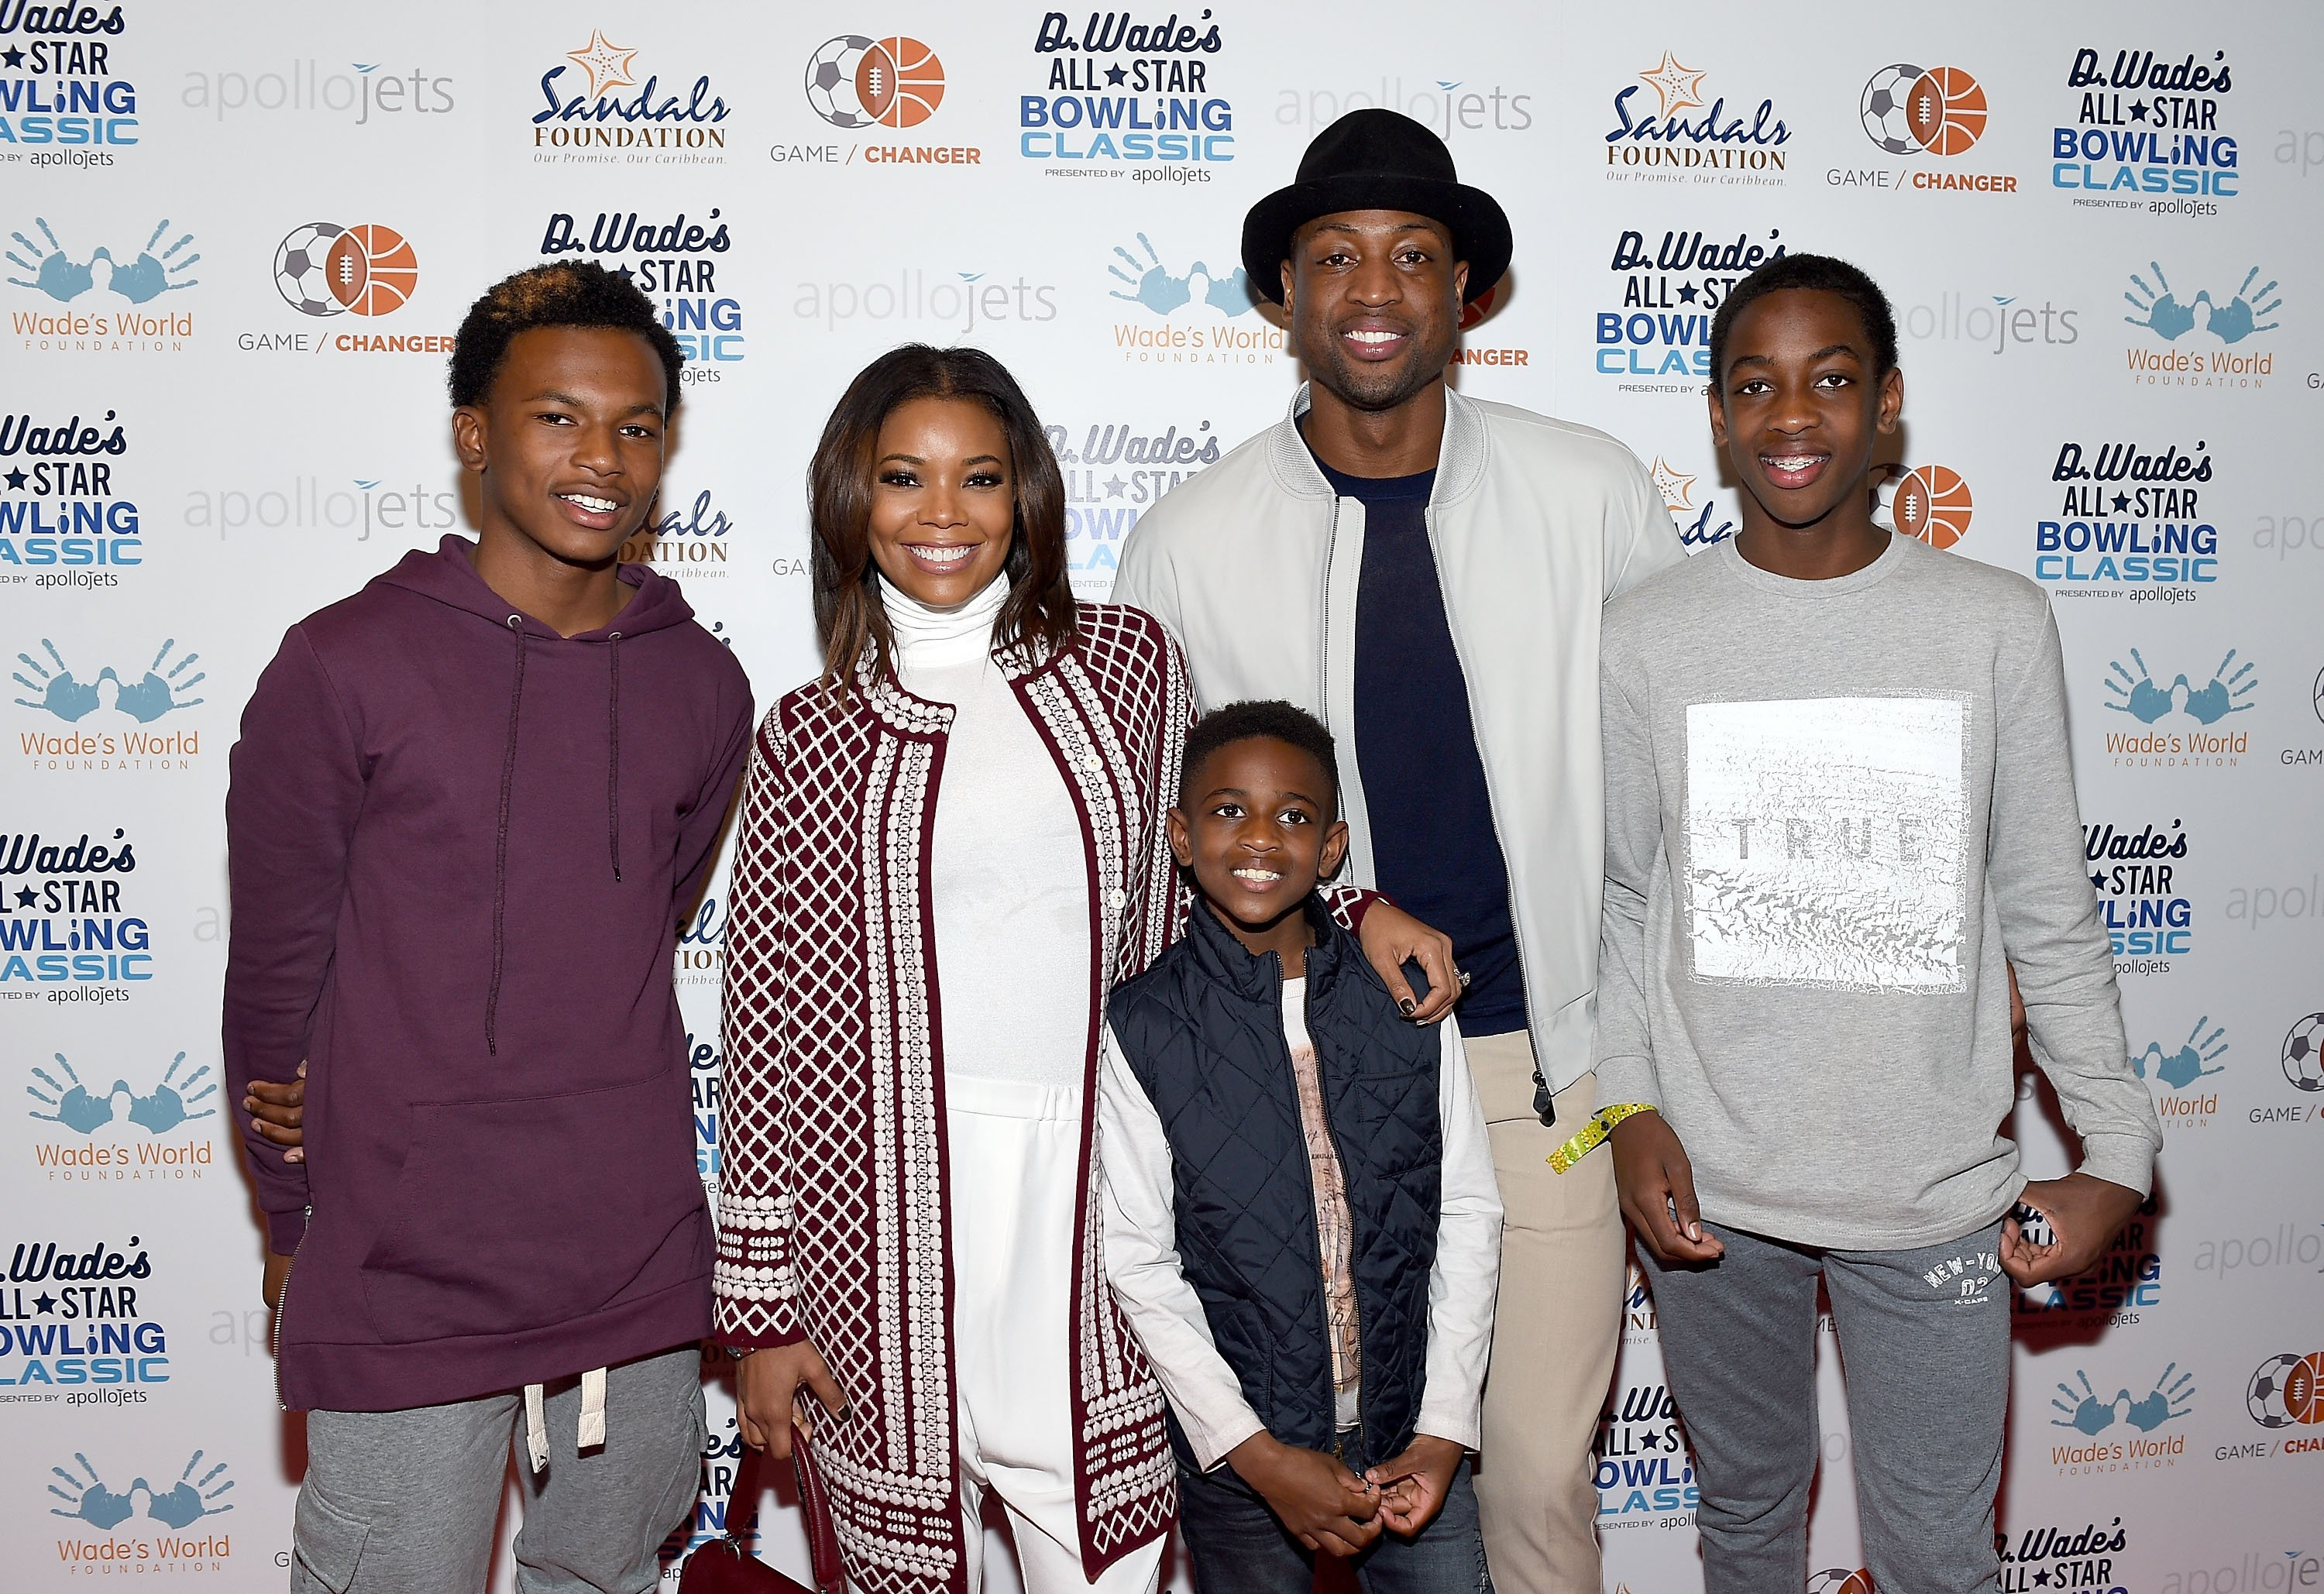 (From left) Dahveon Morris, Gabrielle Union, Zion Wade, Dwyane Wade, and Zaire Wade attend the DWade All Star Bowling Classic in Toronto, Canada on February 13, 2016 | Photo: Getty Images